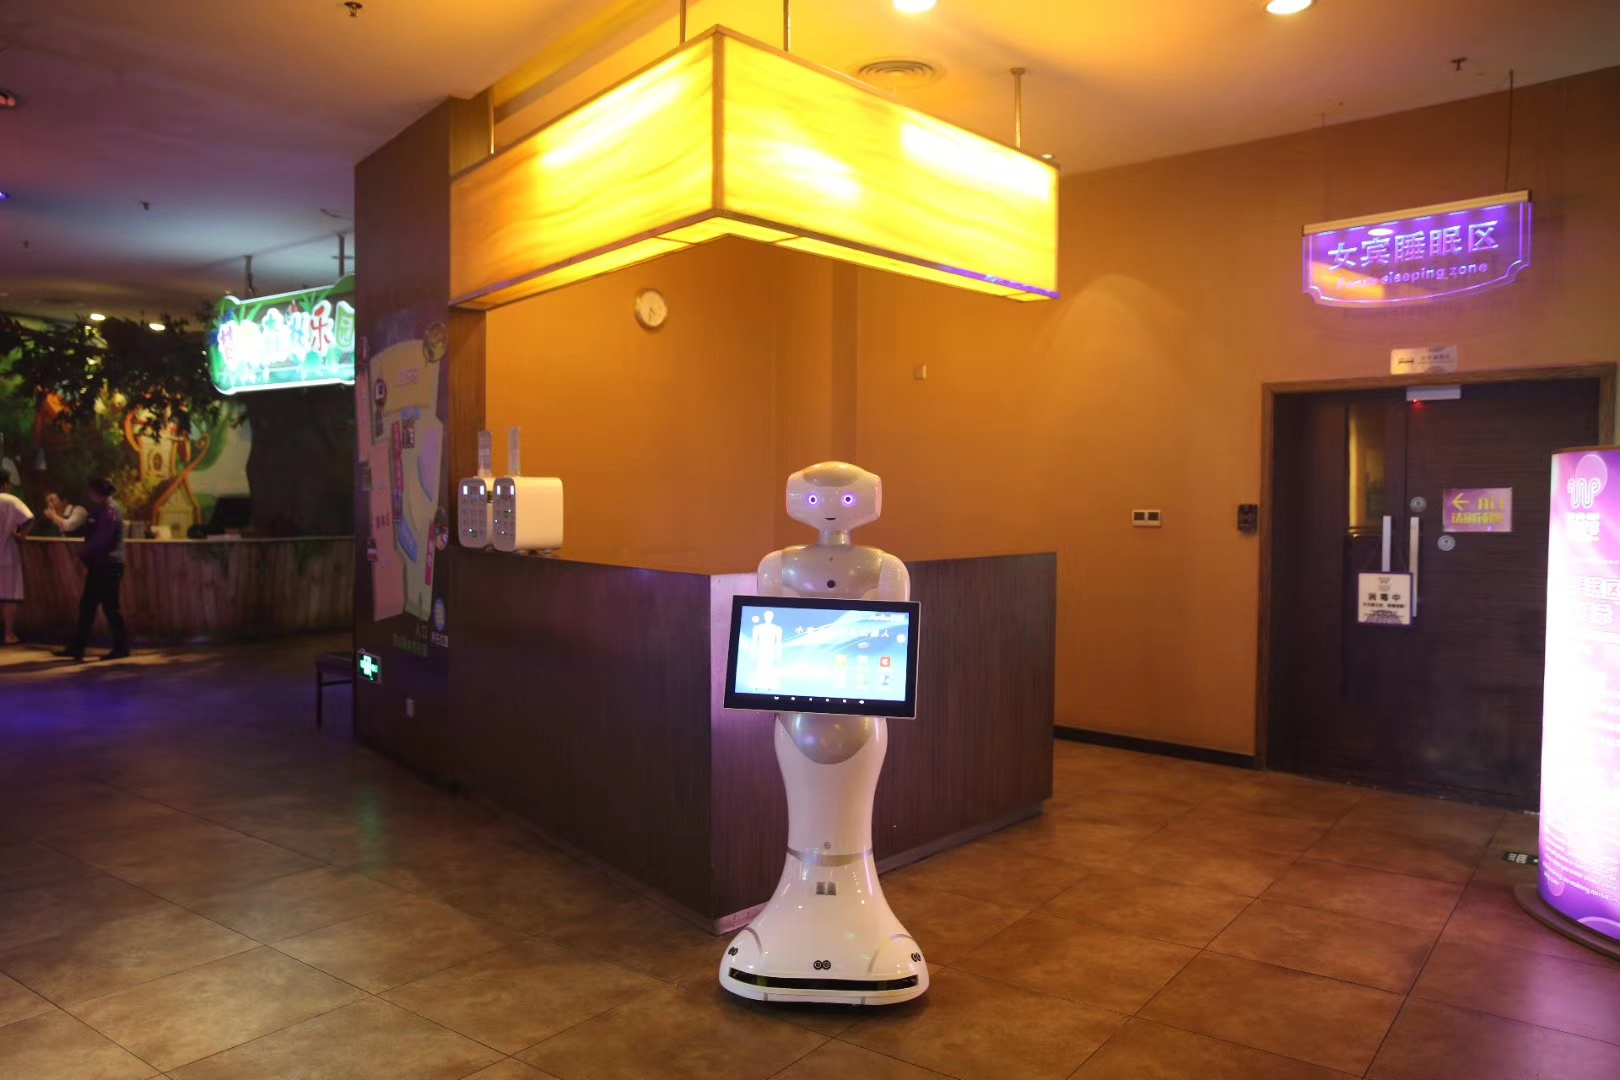 Hotel business robot